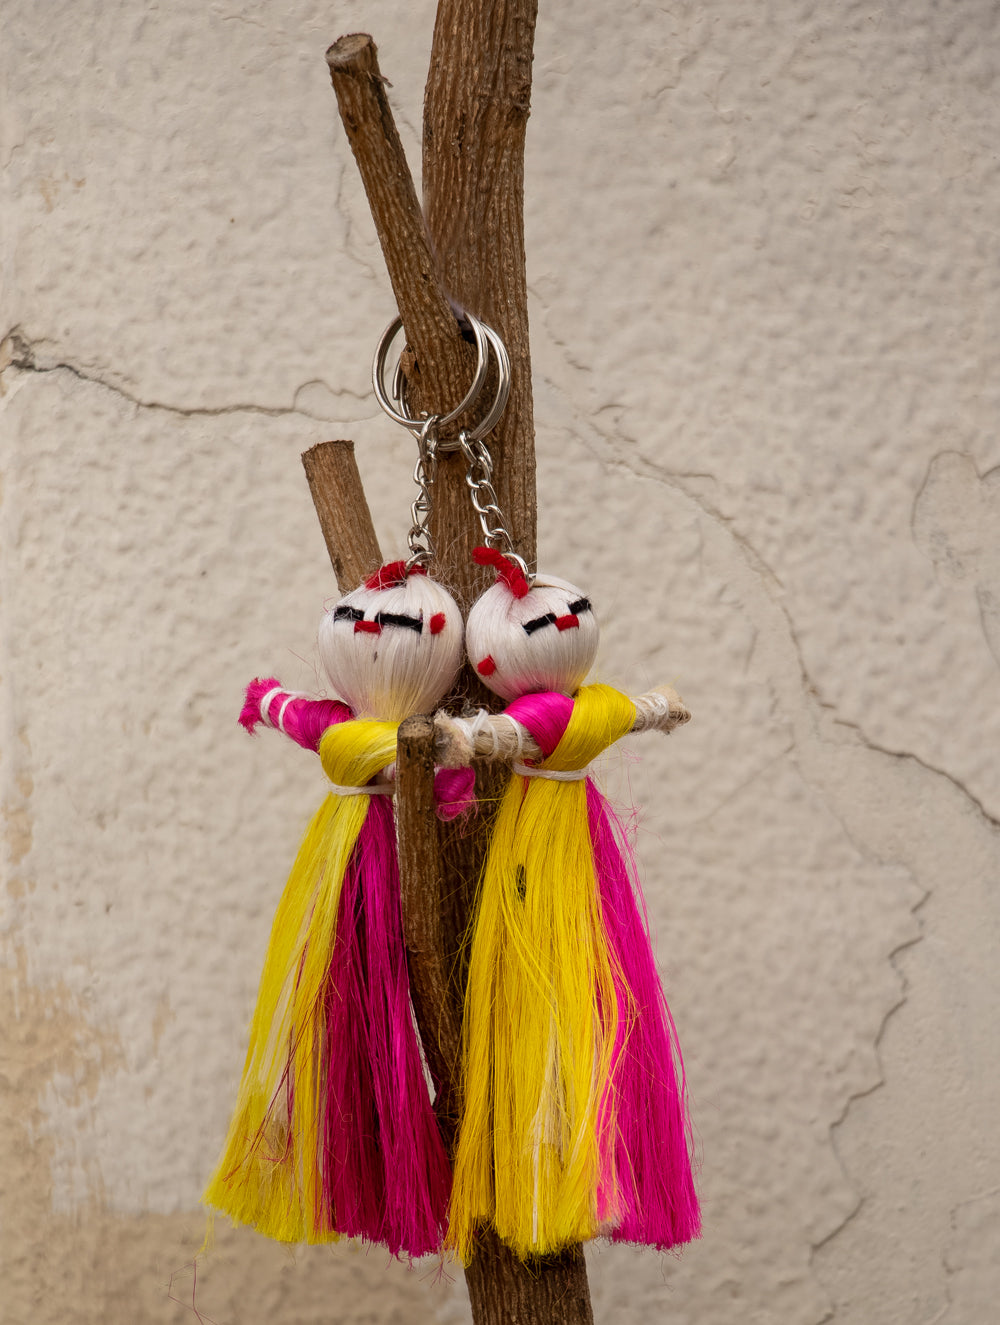 Jute Craft Doll Keychain Set Of 2 The India Craft House